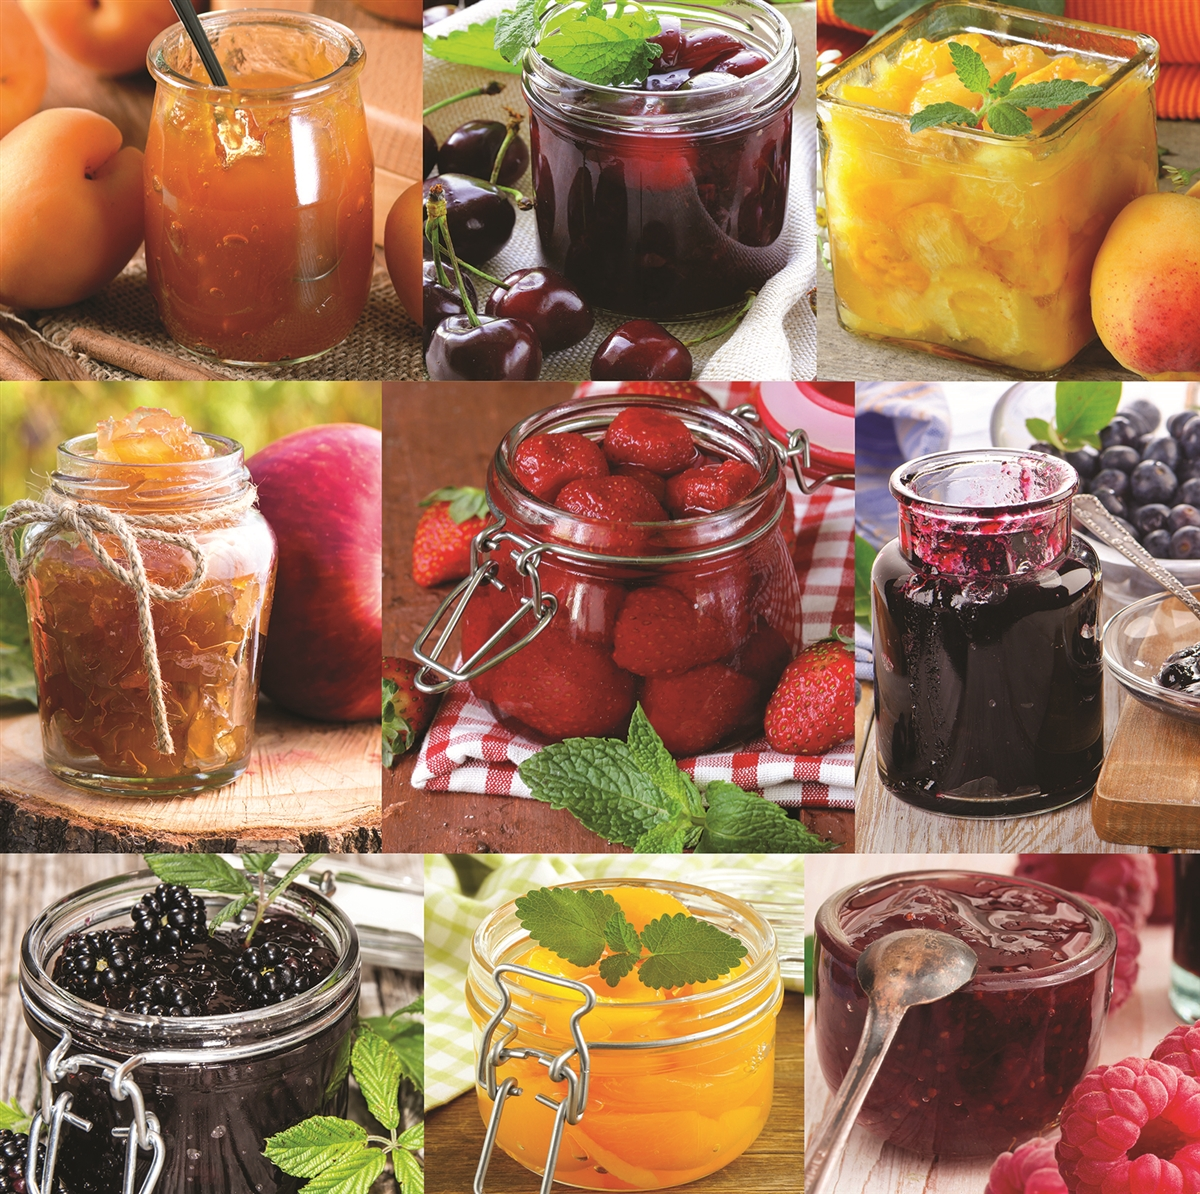 Jellies & Jams Food and Drink Jigsaw Puzzle